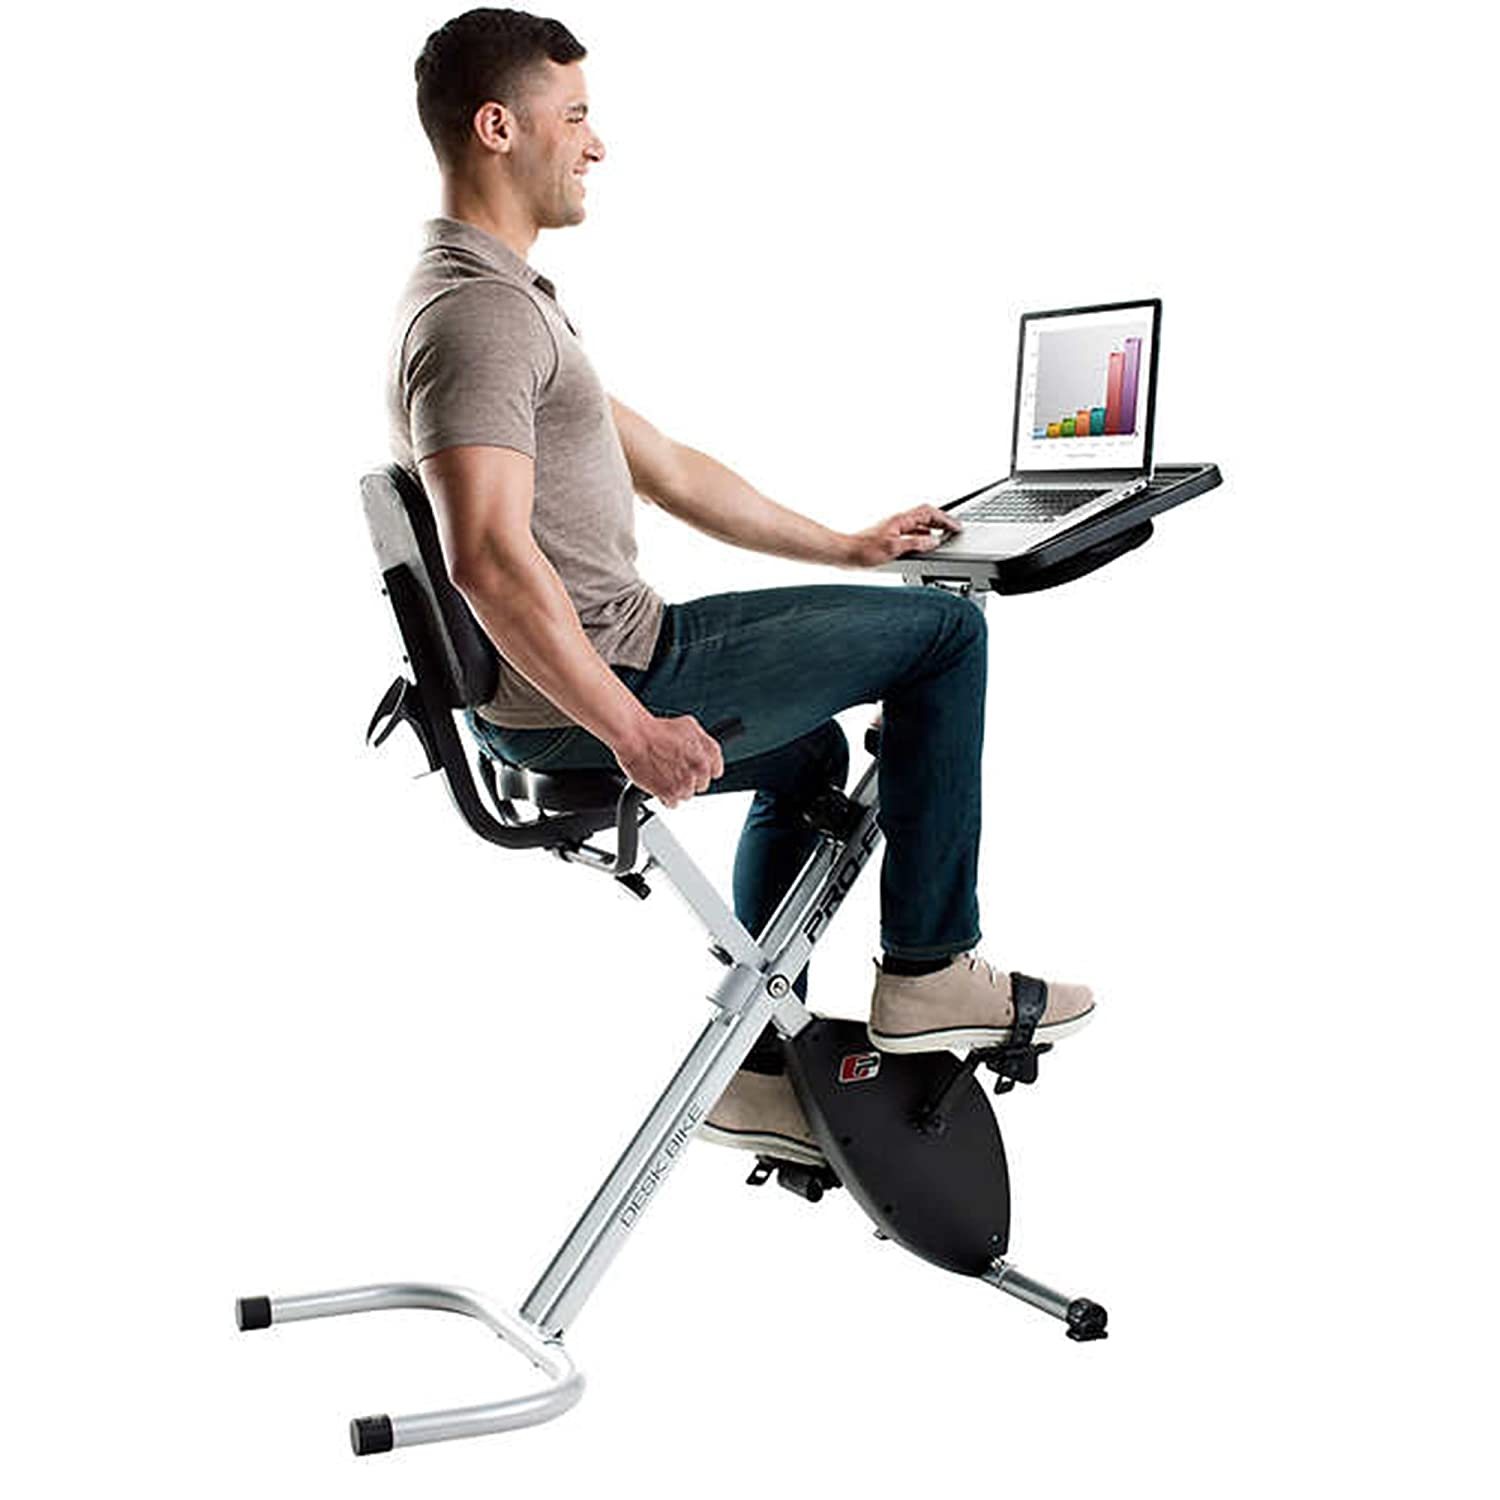 machines awesome creatodesigns and equipment desk exercise com standing images ideas